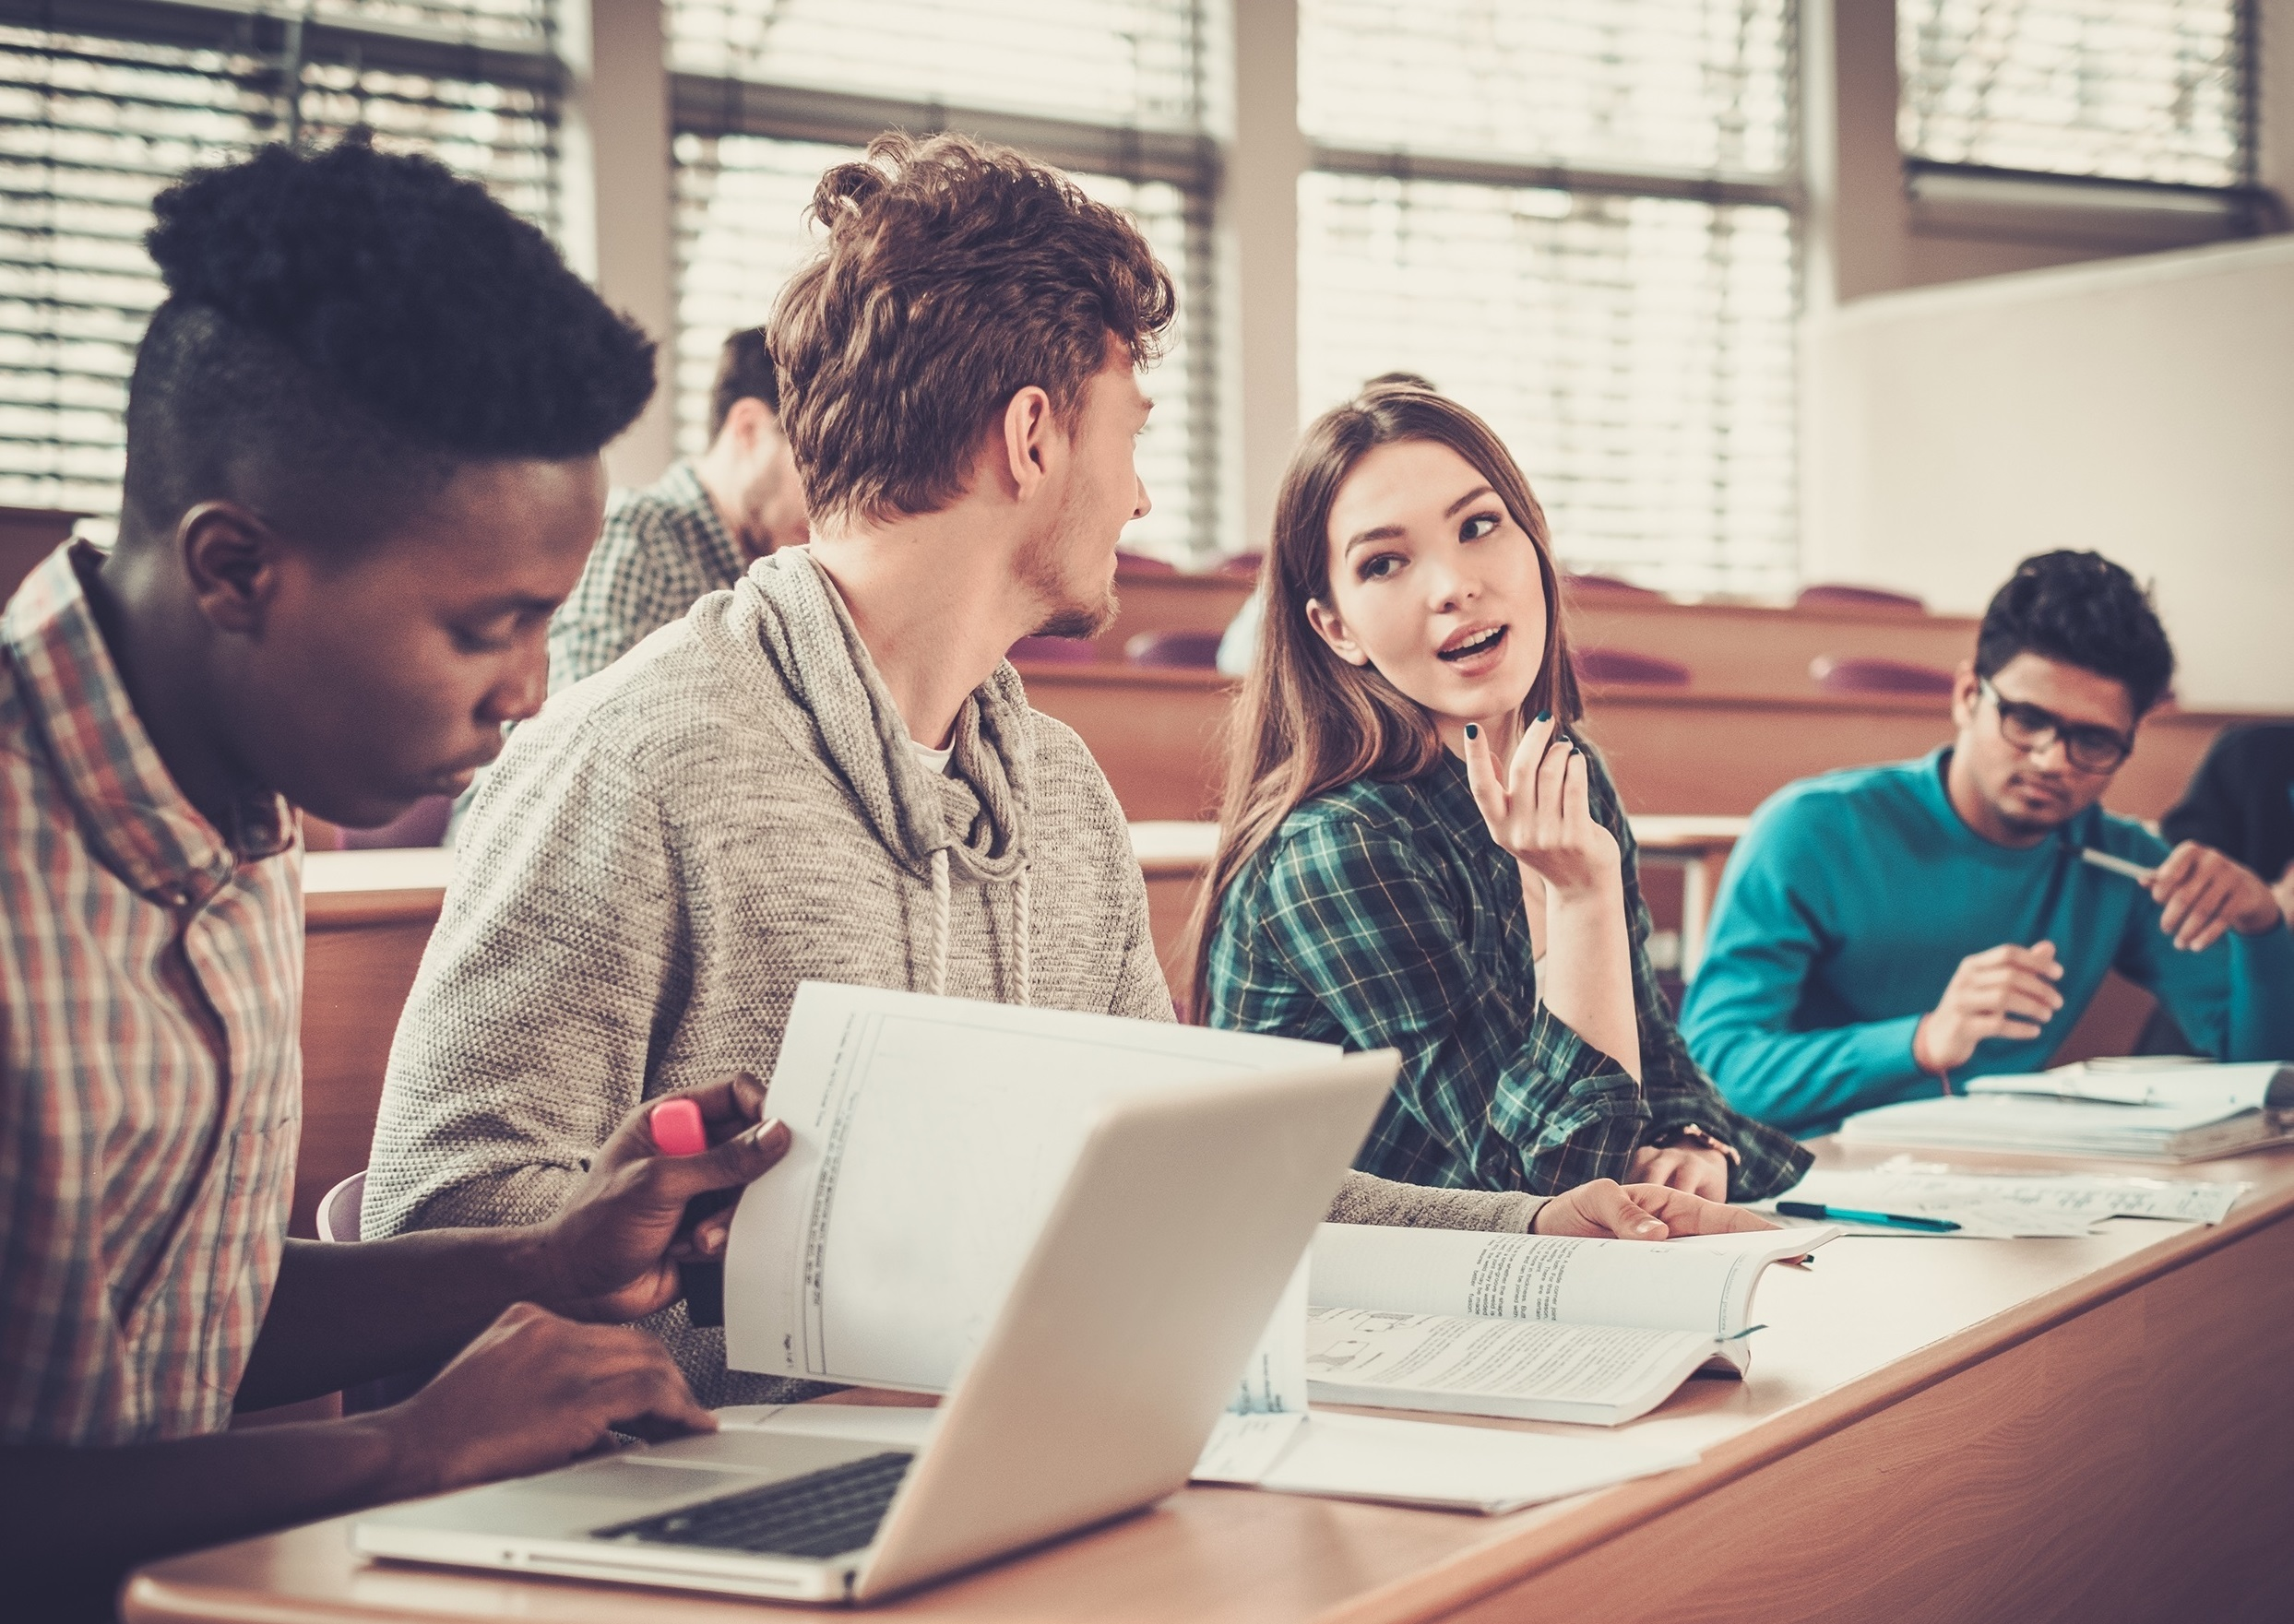 5 U.S. Colleges with excellent links to industry and pathways to employment